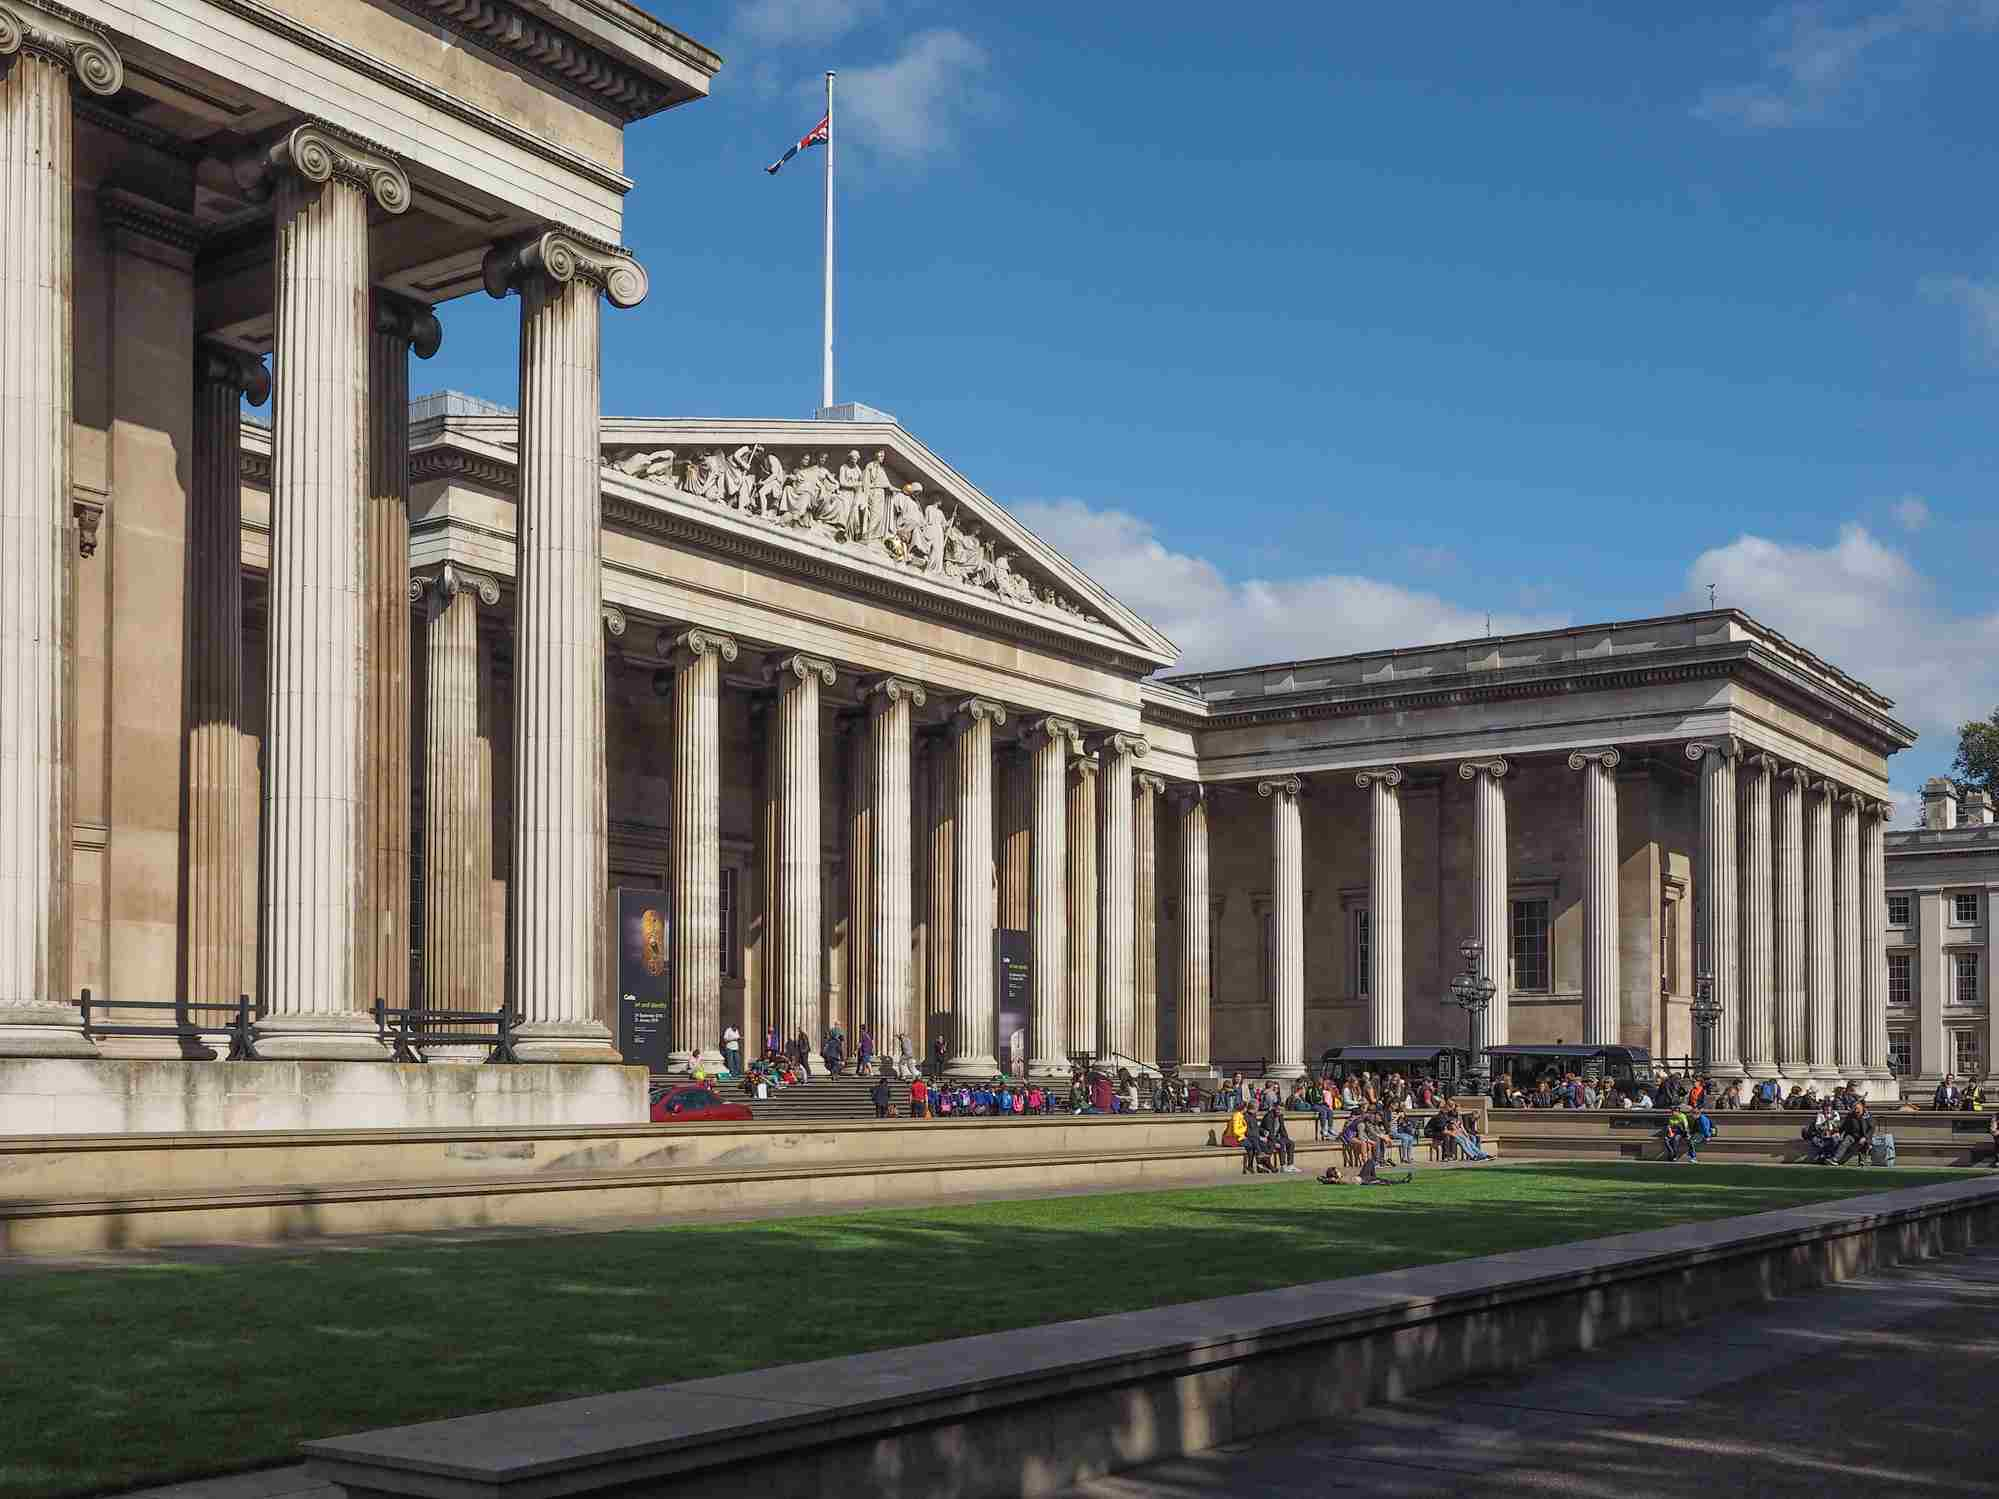 The British Museum is the largest museum of antiquities in the world and also the most visited by tourists